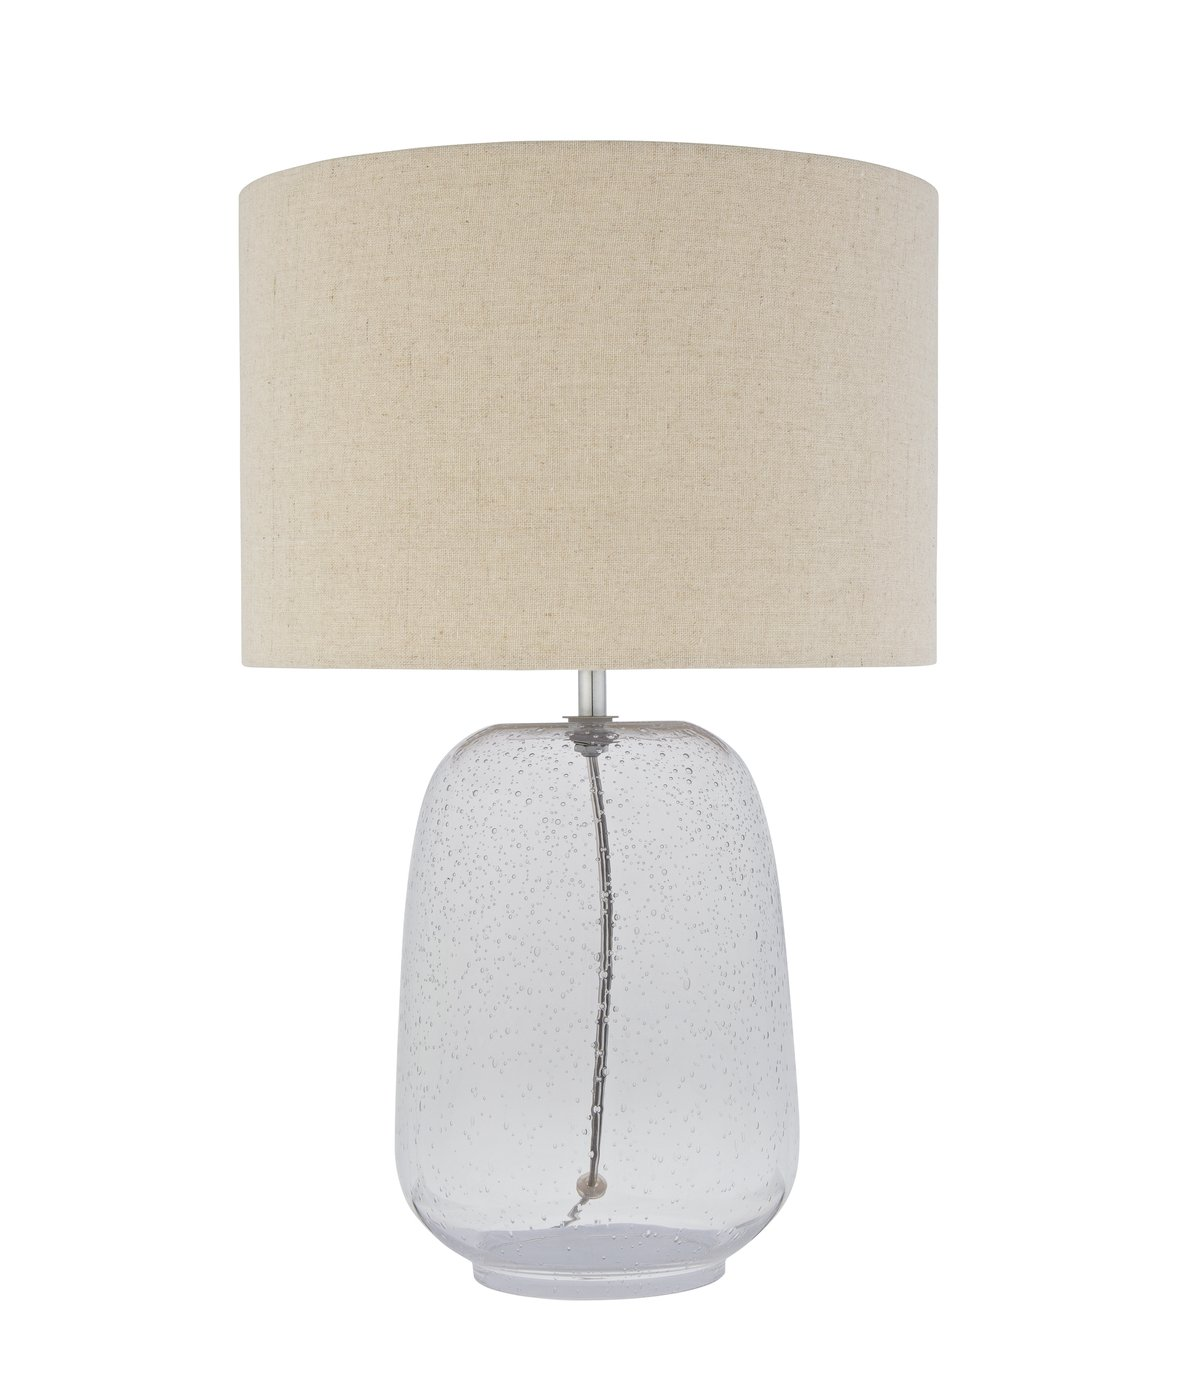 Argos Home Highland Lodge Recycled Table Lamp - White